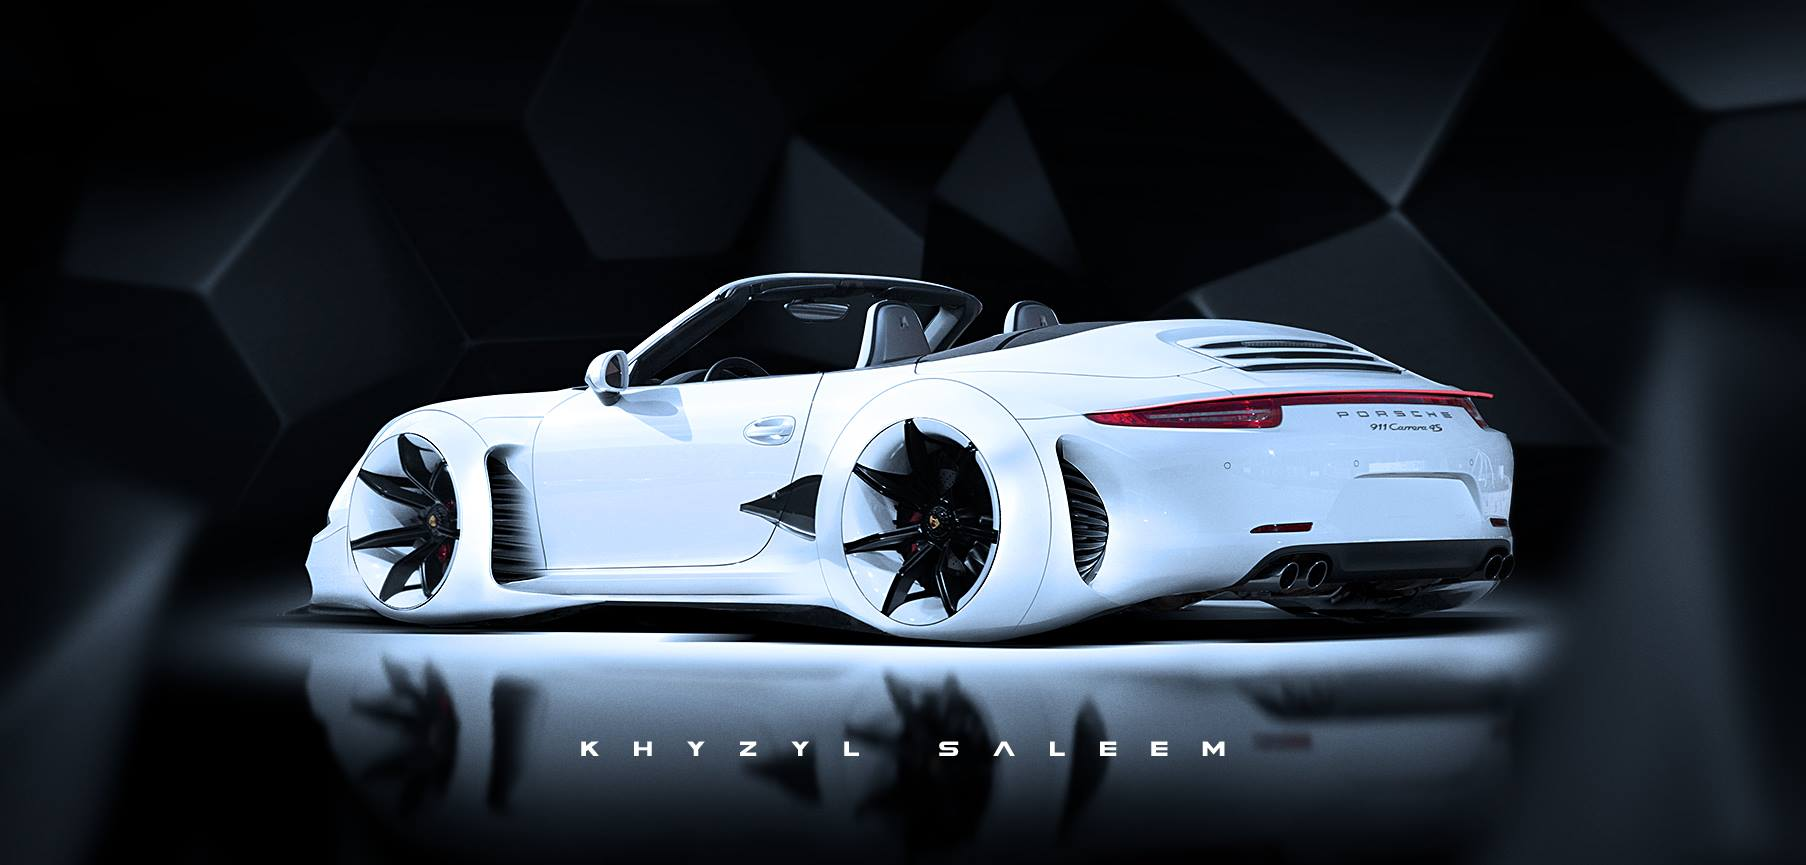 Saleem Name 3d Wallpaper Porsche 911 Cabriolet Turned Into Audi Rsq Lookalike That